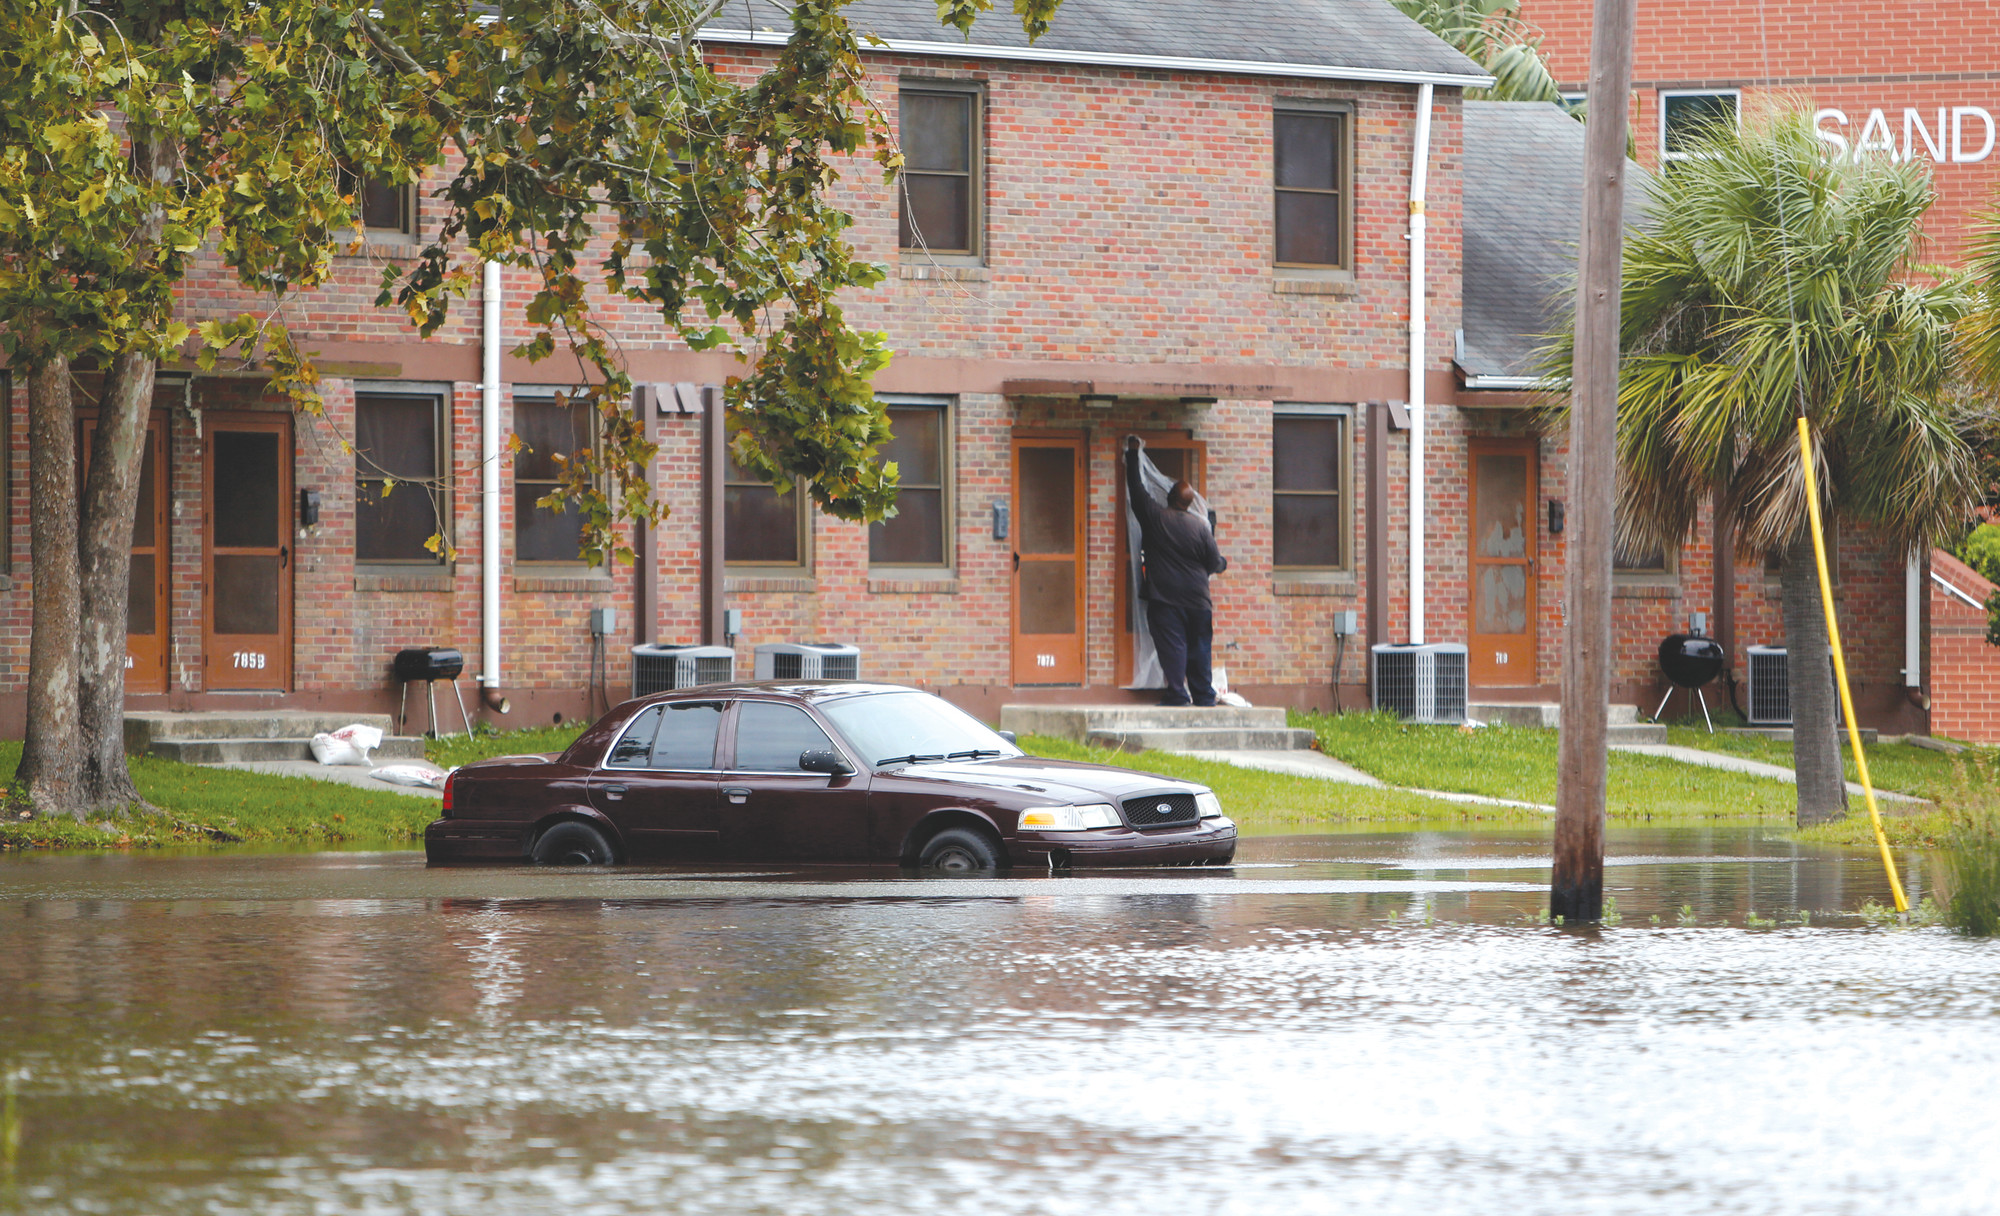 A Charleston resident puts plastic up over his apartment door as a car rests in floodwaters near East Bay Street in Charleston after Hurricane Irma on Sept. 10, 2017.